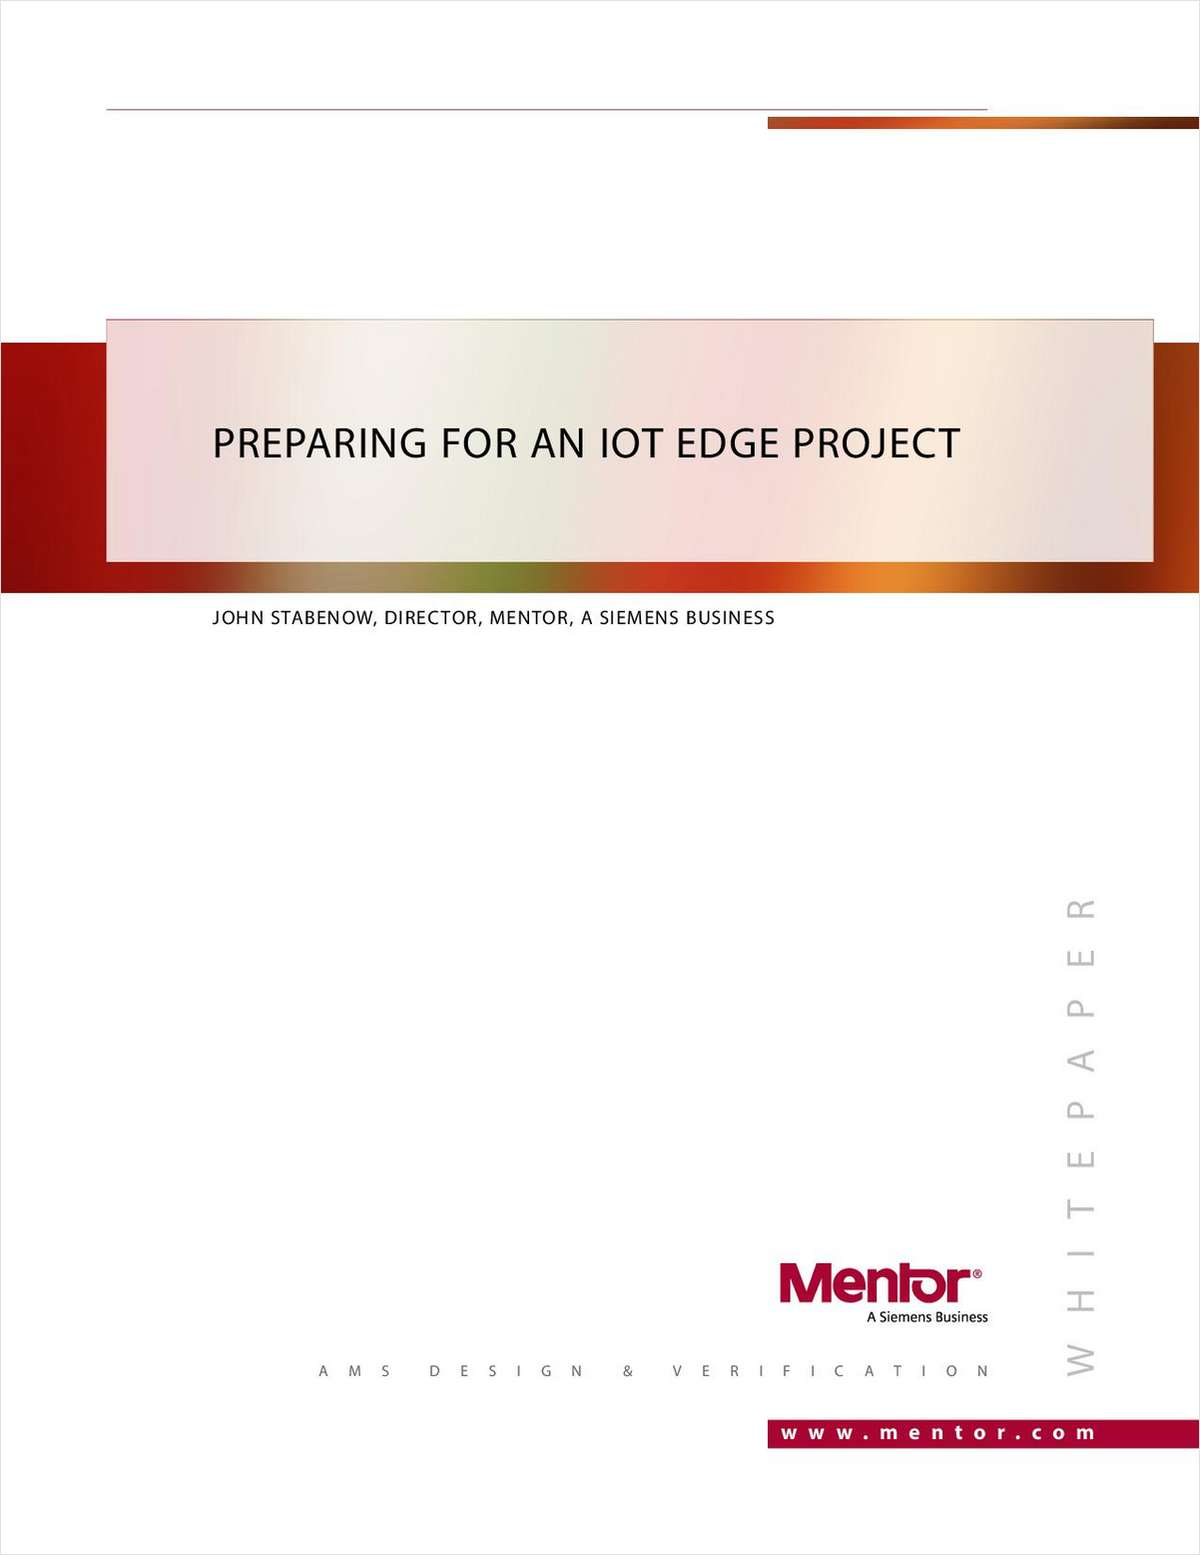 Preparing for an IoT Edge Project